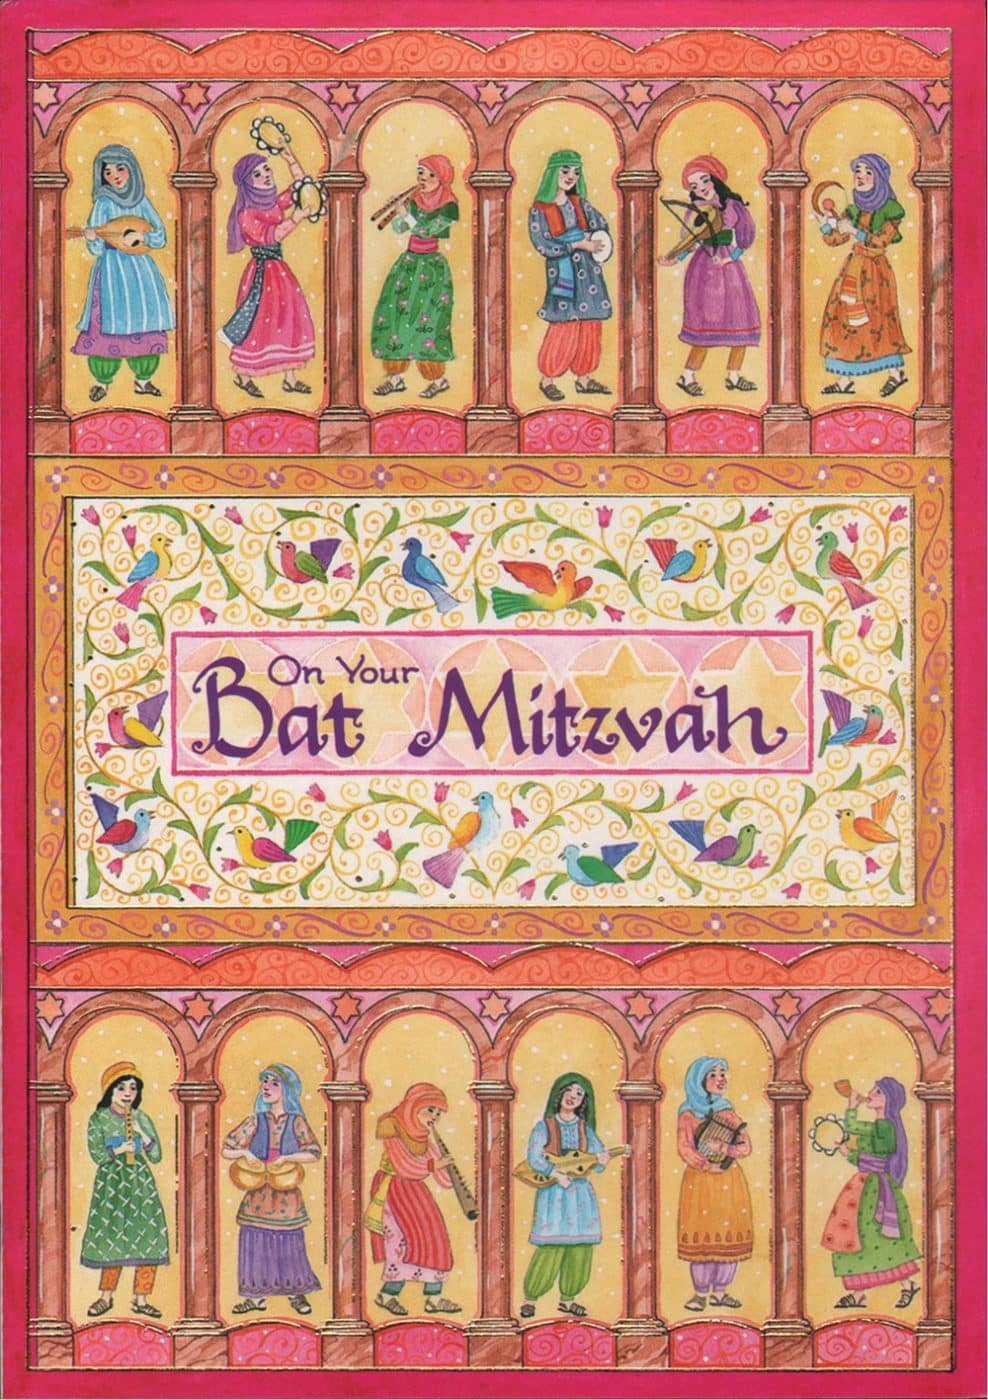 BT407 Bat Mitzvah Women of the Bible Art Card by Mickie Caspi